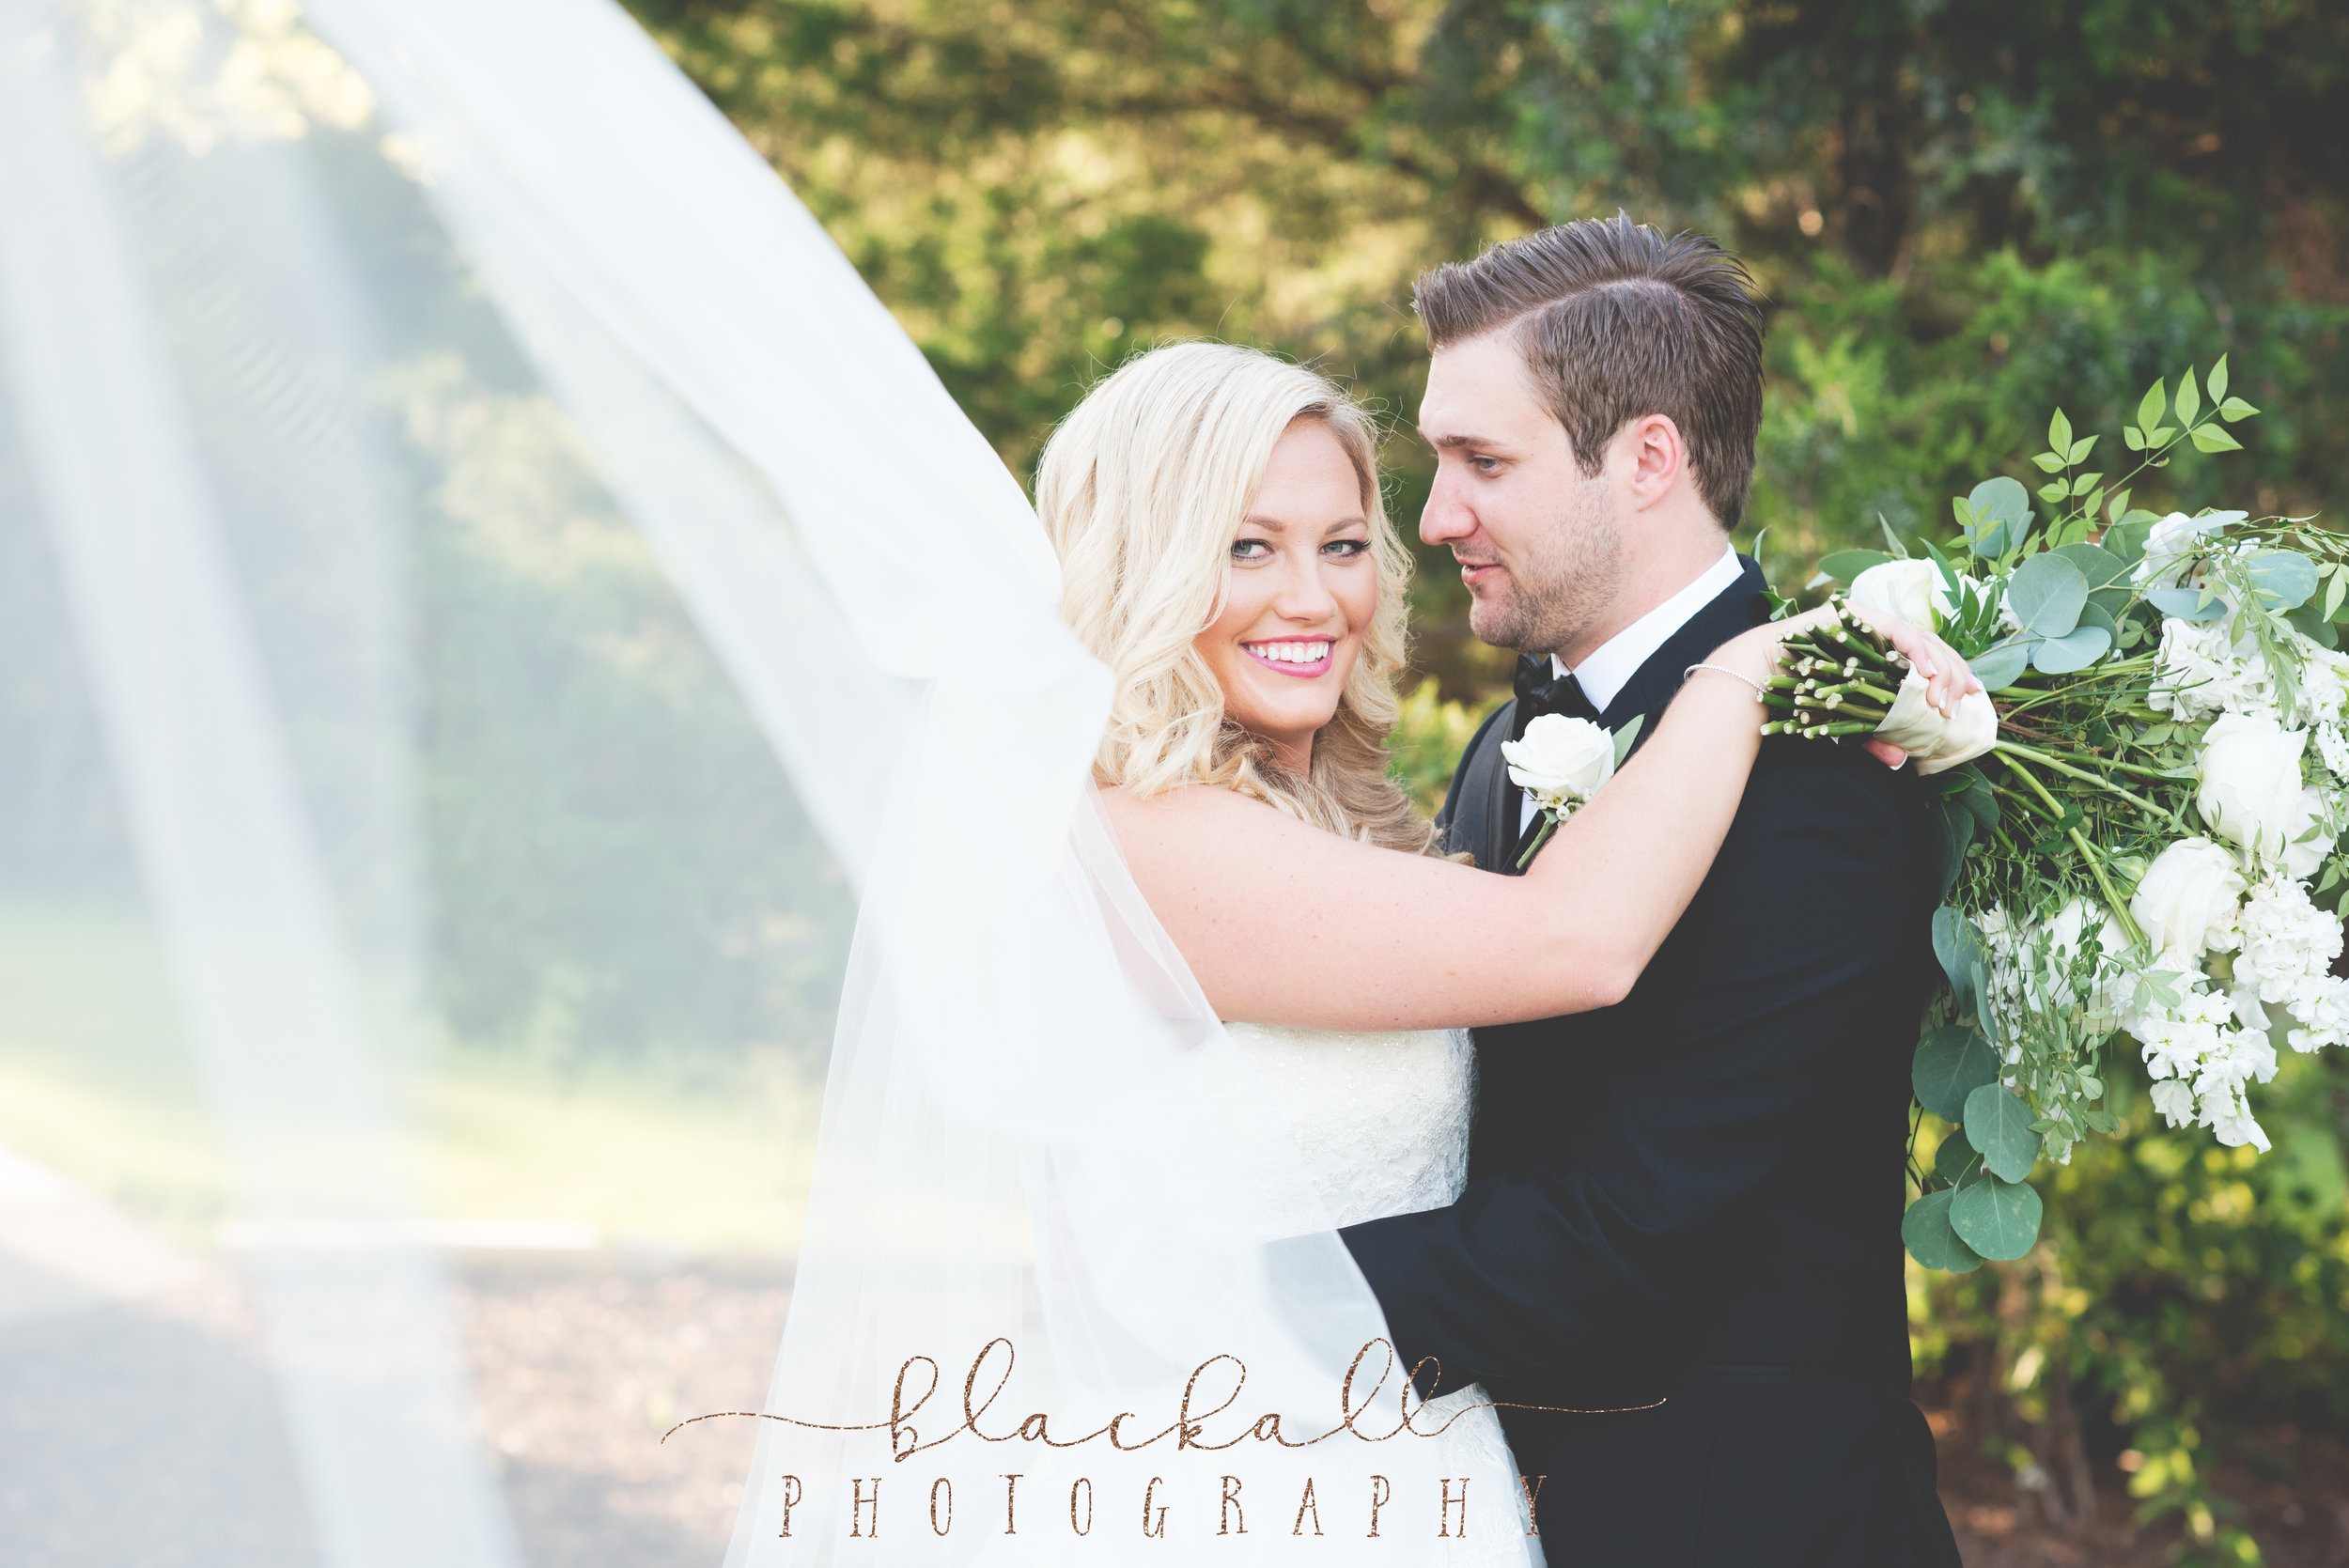 WEDDING_BlackallPhotography_41.JPG